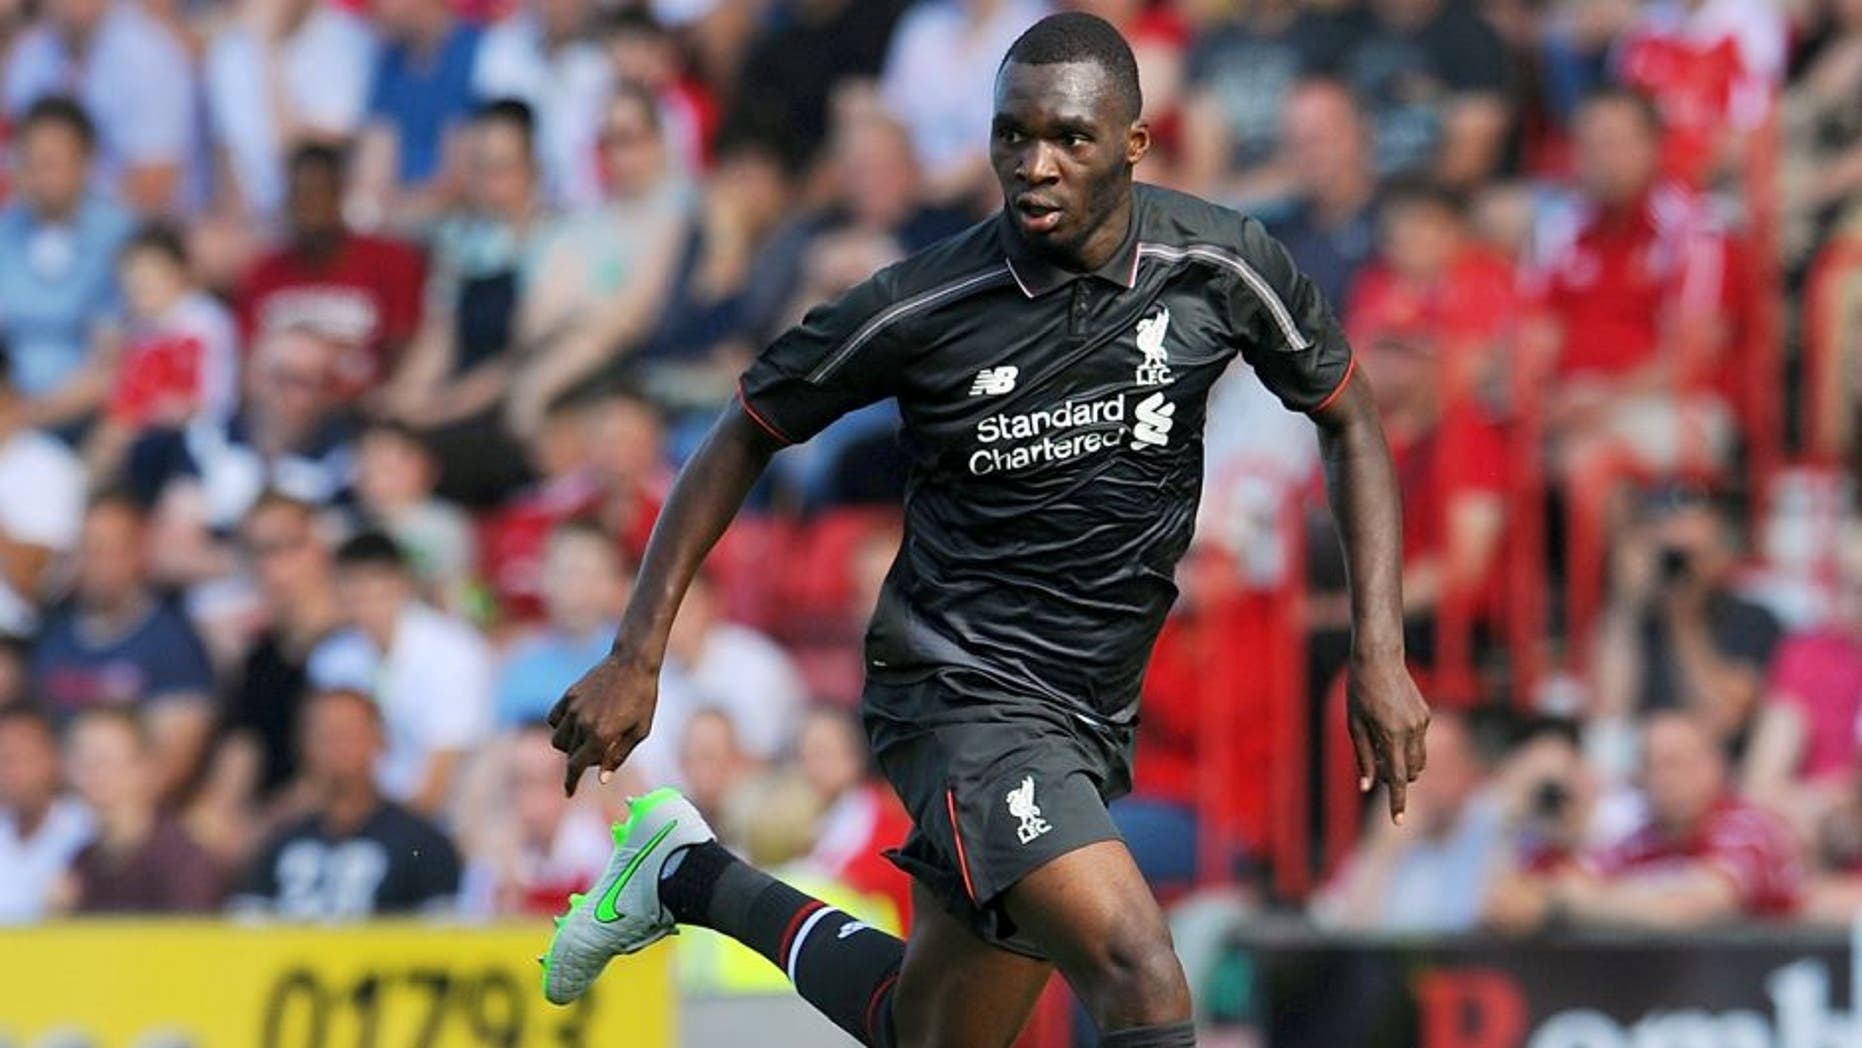 SWINDON, ENGLAND - AUGUST 02: (THE SUN OUT, THE SUN ON SUNDAY OUT) Christian Benteke of Liverpool in action during a preseason friendly at County Ground on August 2, 2015 in Swindon, England. (Photo by Andrew Powell/Liverpool FC via Getty Images)